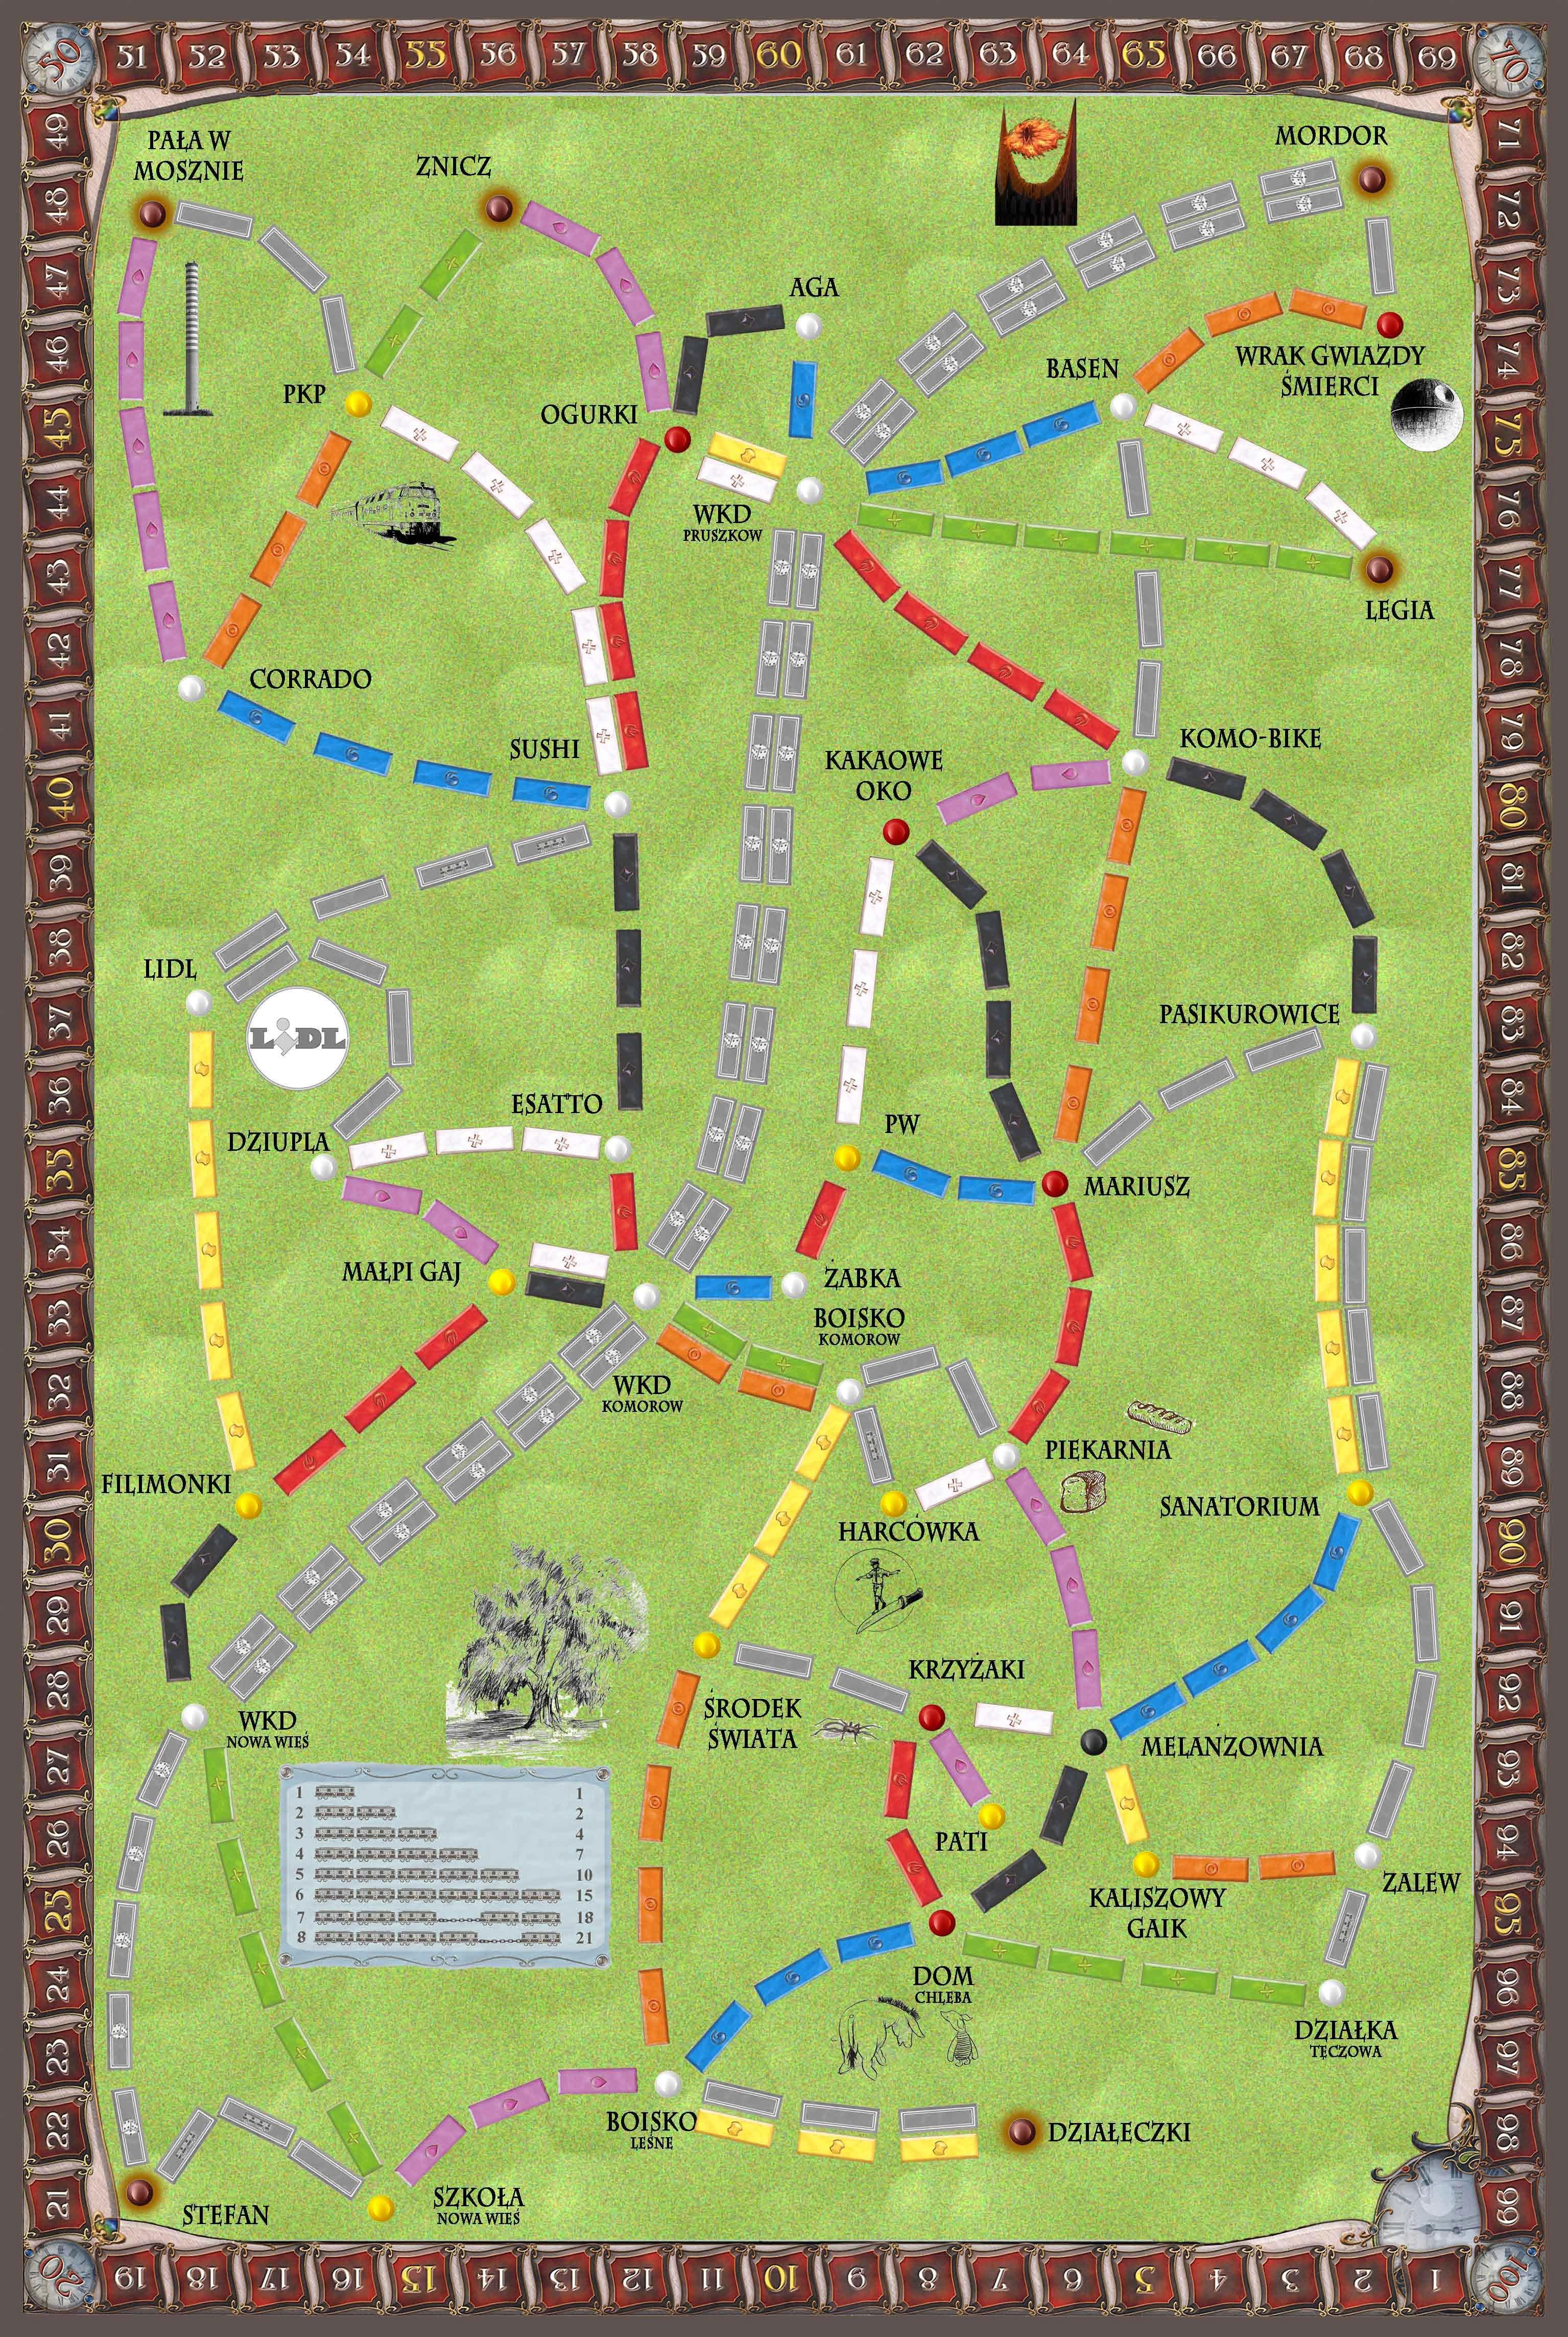 Komorów (fan expansion to Ticket to Ride)